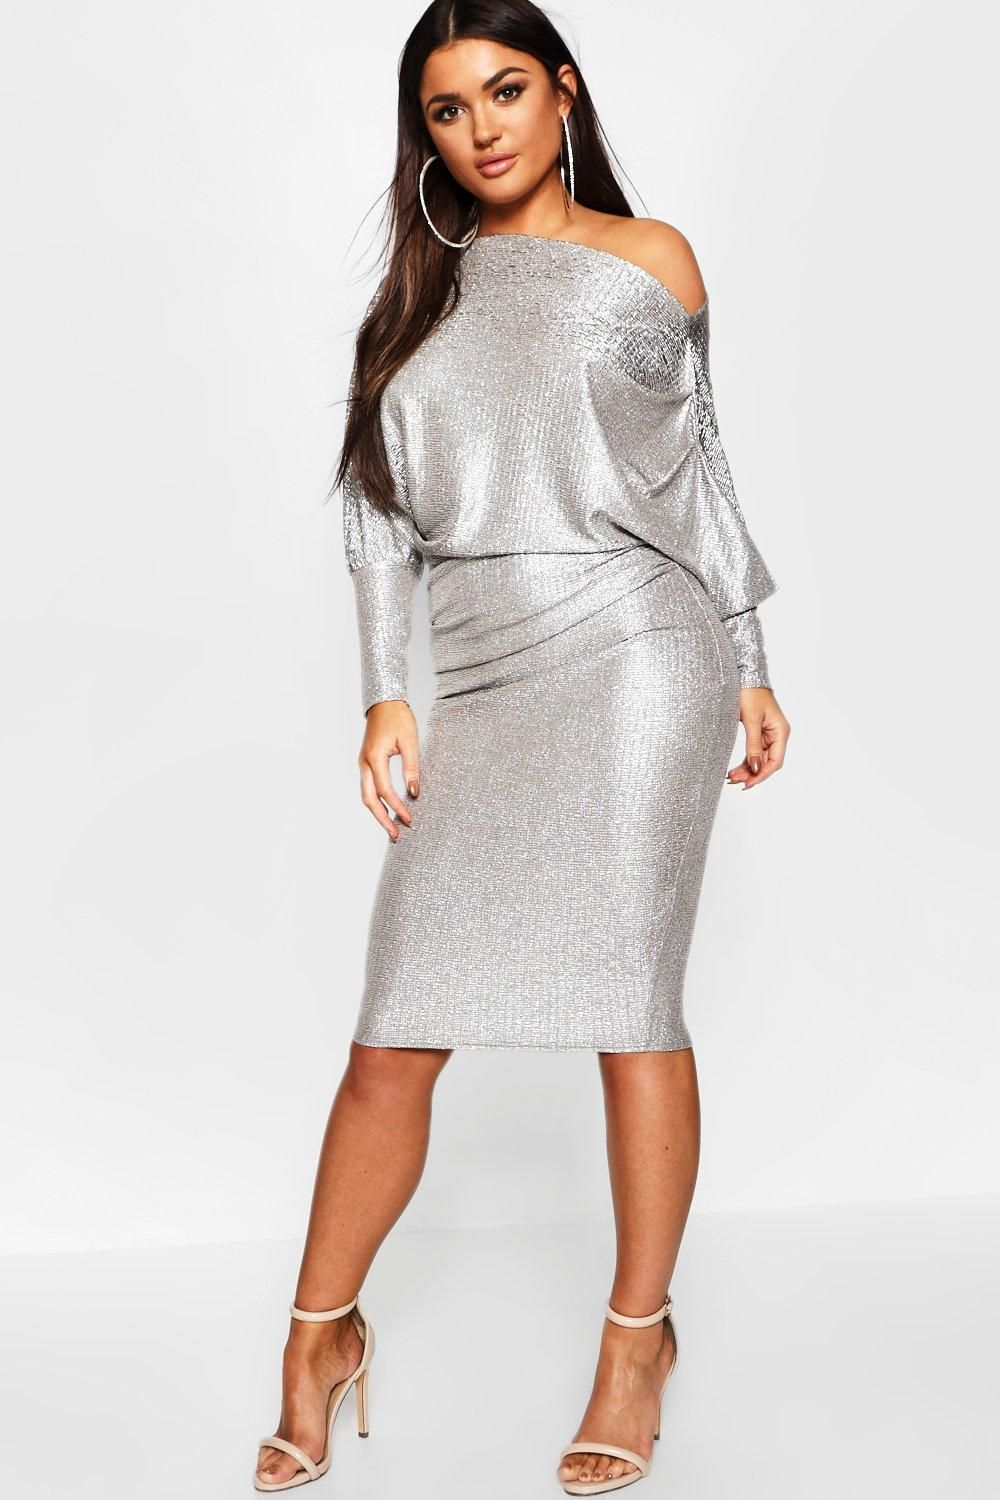 385256aa71 Click here to find out about the Off The Shoulder Metallic Midi Bodycon  Dress from Boohoo, part of our latest WOMENS collection ready to shop online  today!